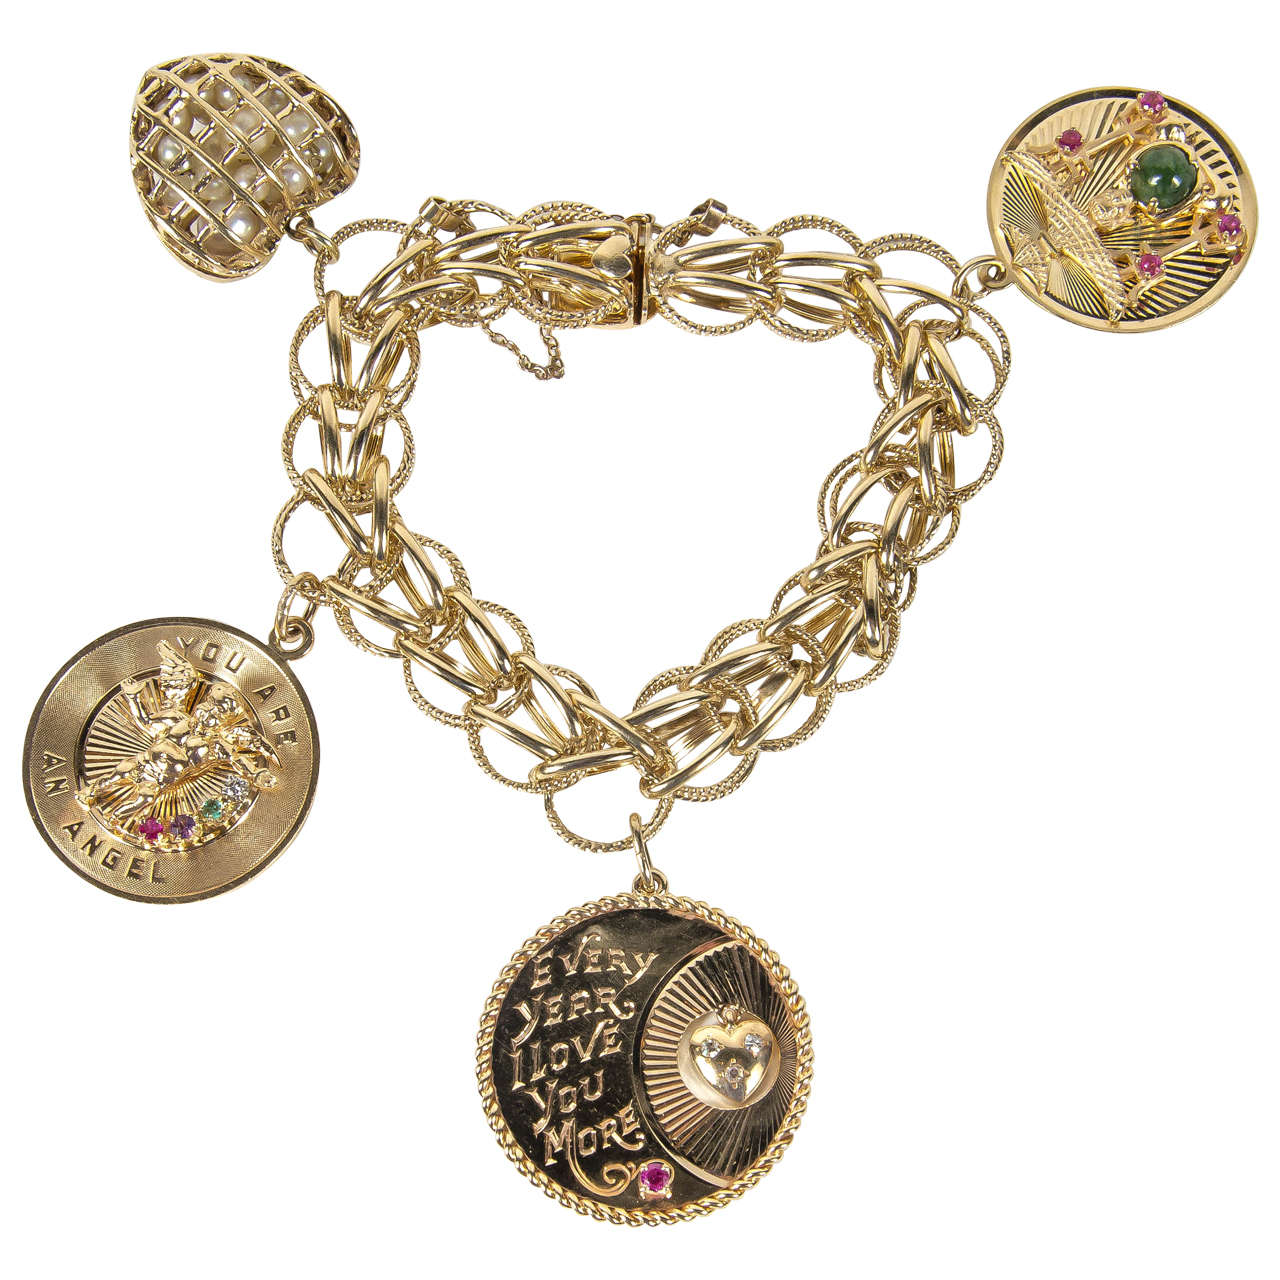 1950s Gold Multi Charm Bracelet With Cartier For